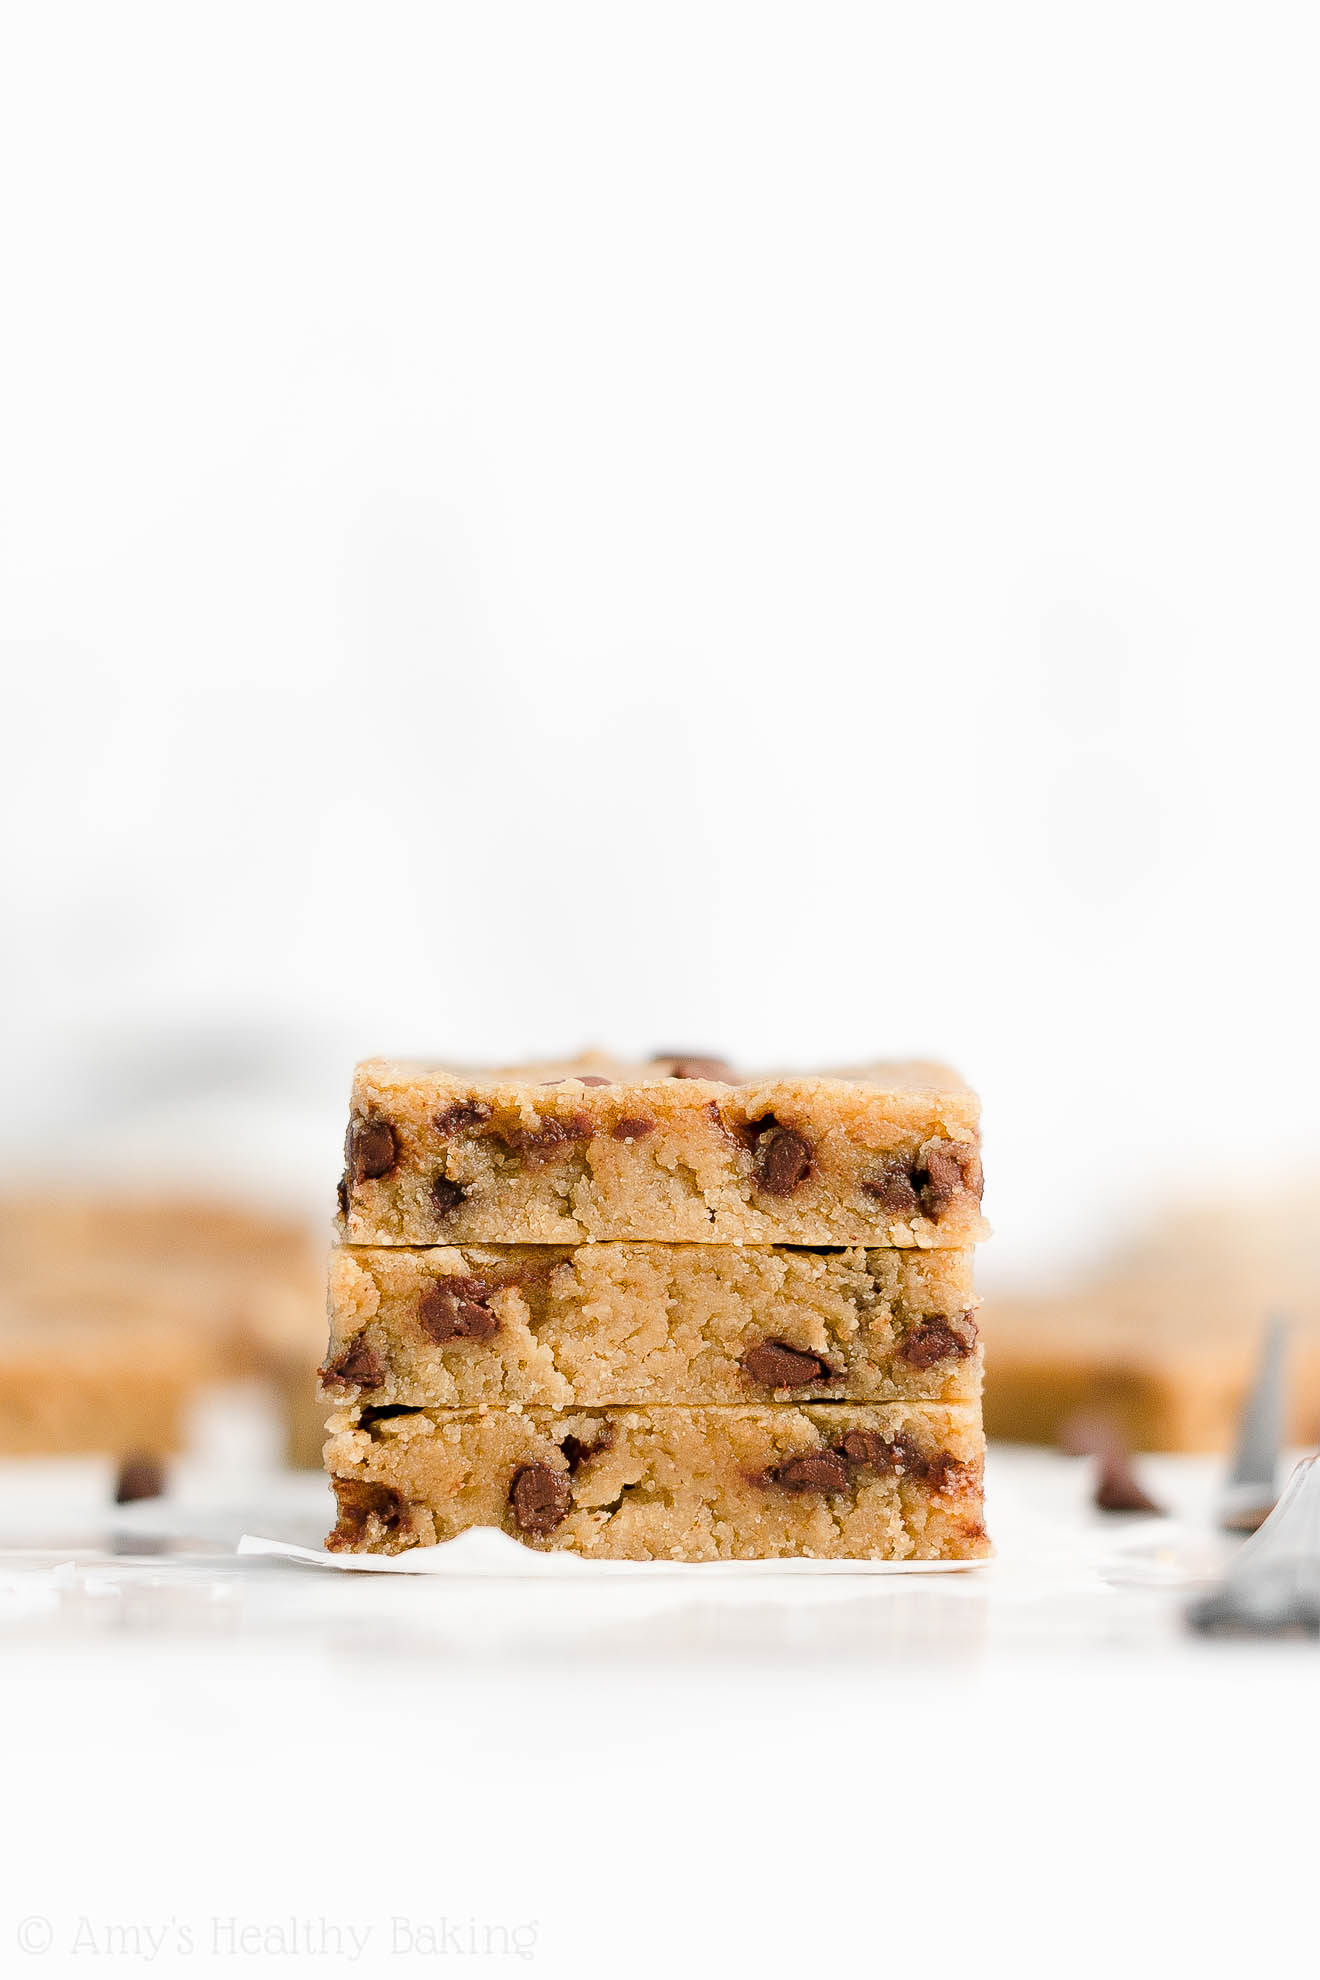 Healthy Gluten Free Vegan Chewy Flourless Chocolate Chip Peanut Butter Cookie Bars